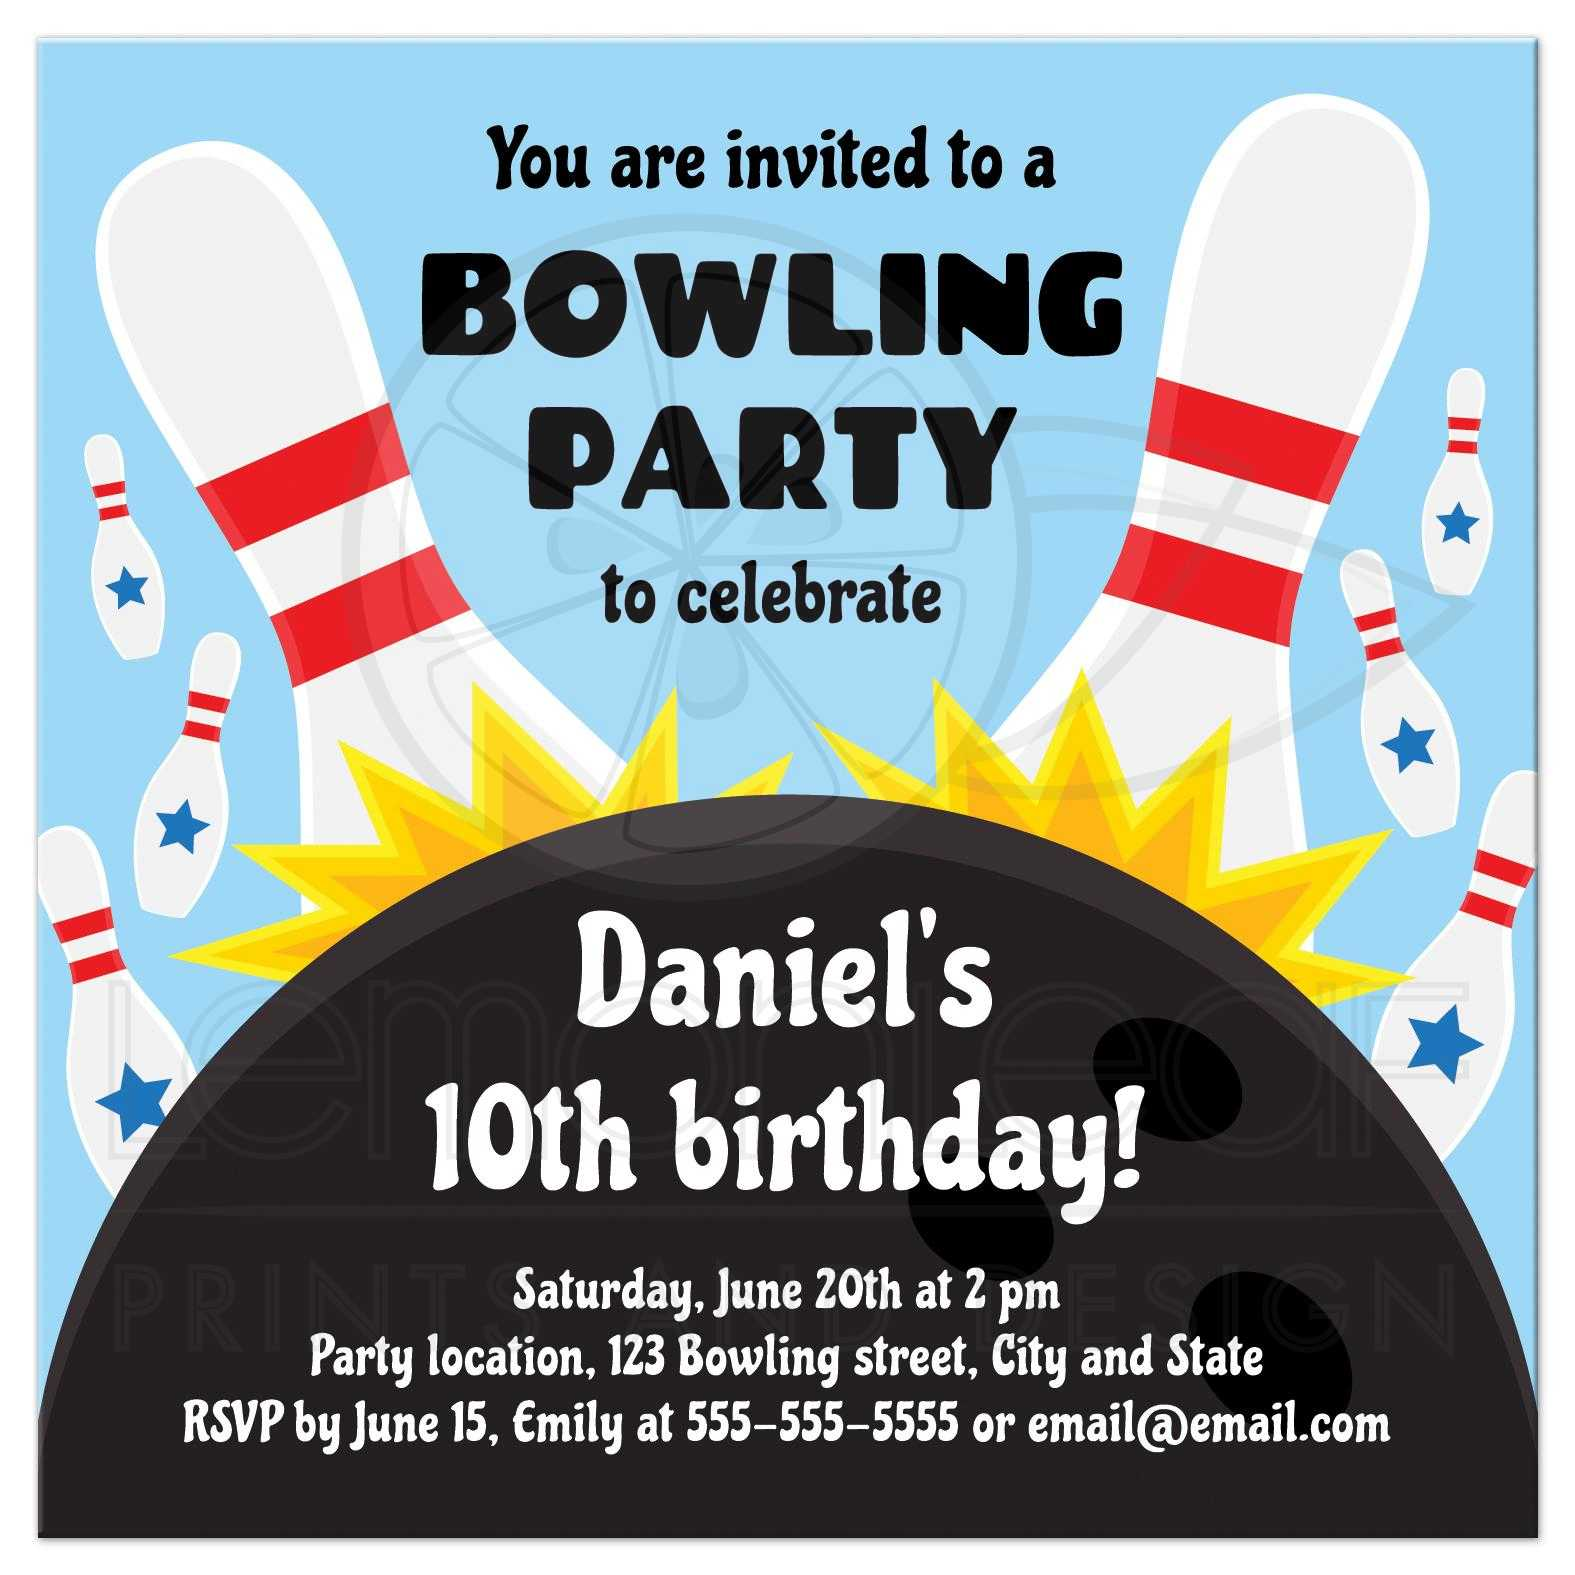 Bowling Invitation | Bowling Birthday Party Invitation For Kids With Bowling Ball